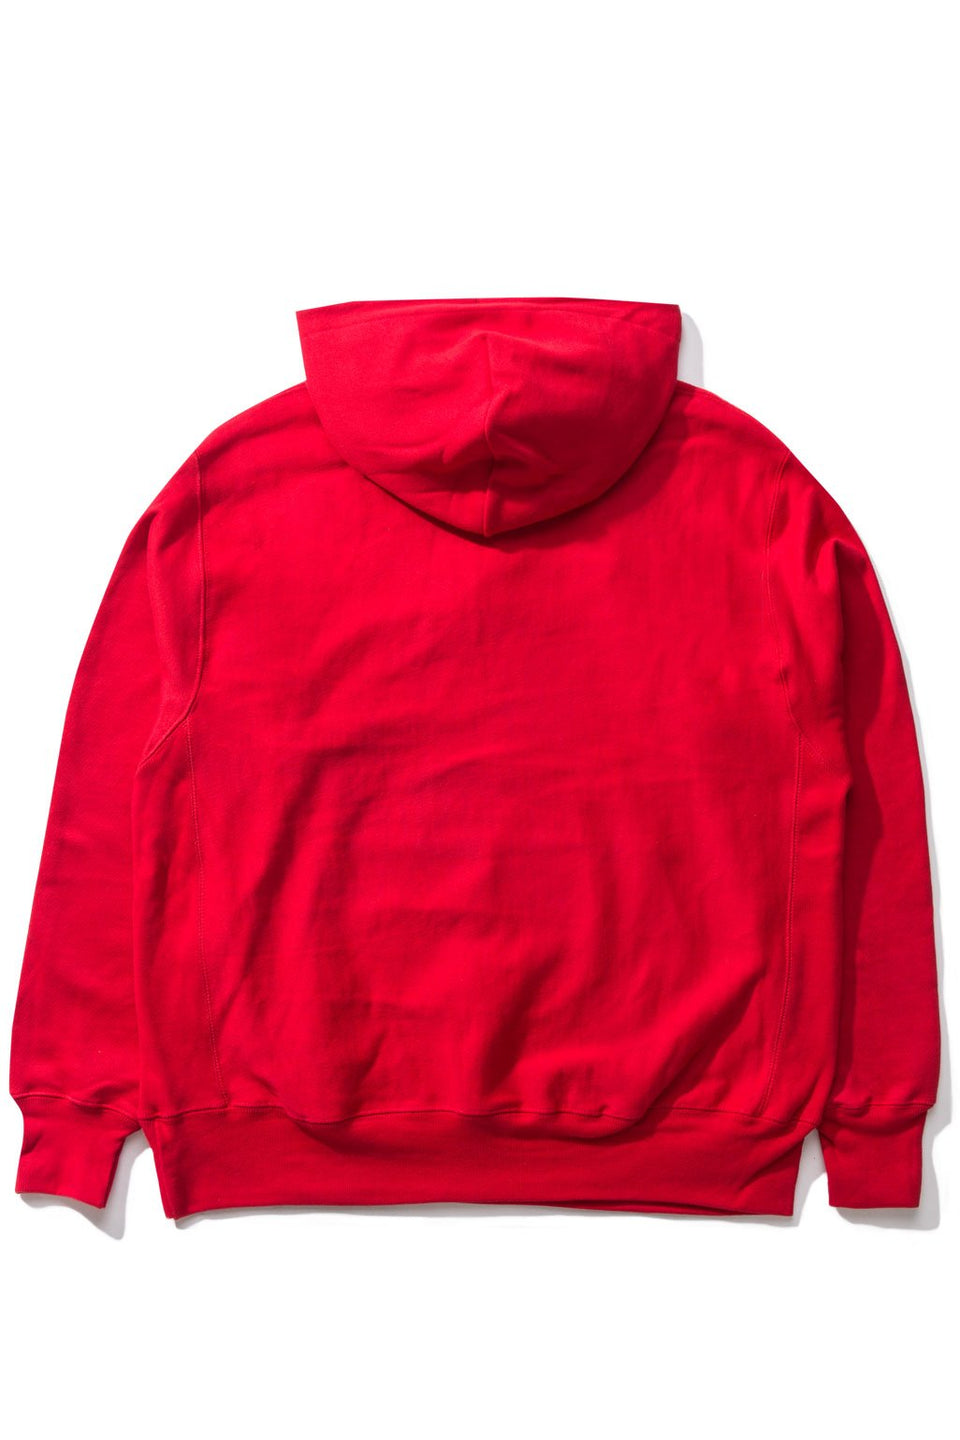 7f2349aa672c Small Bar RW Champion Pullover Hoodie – The Hundreds